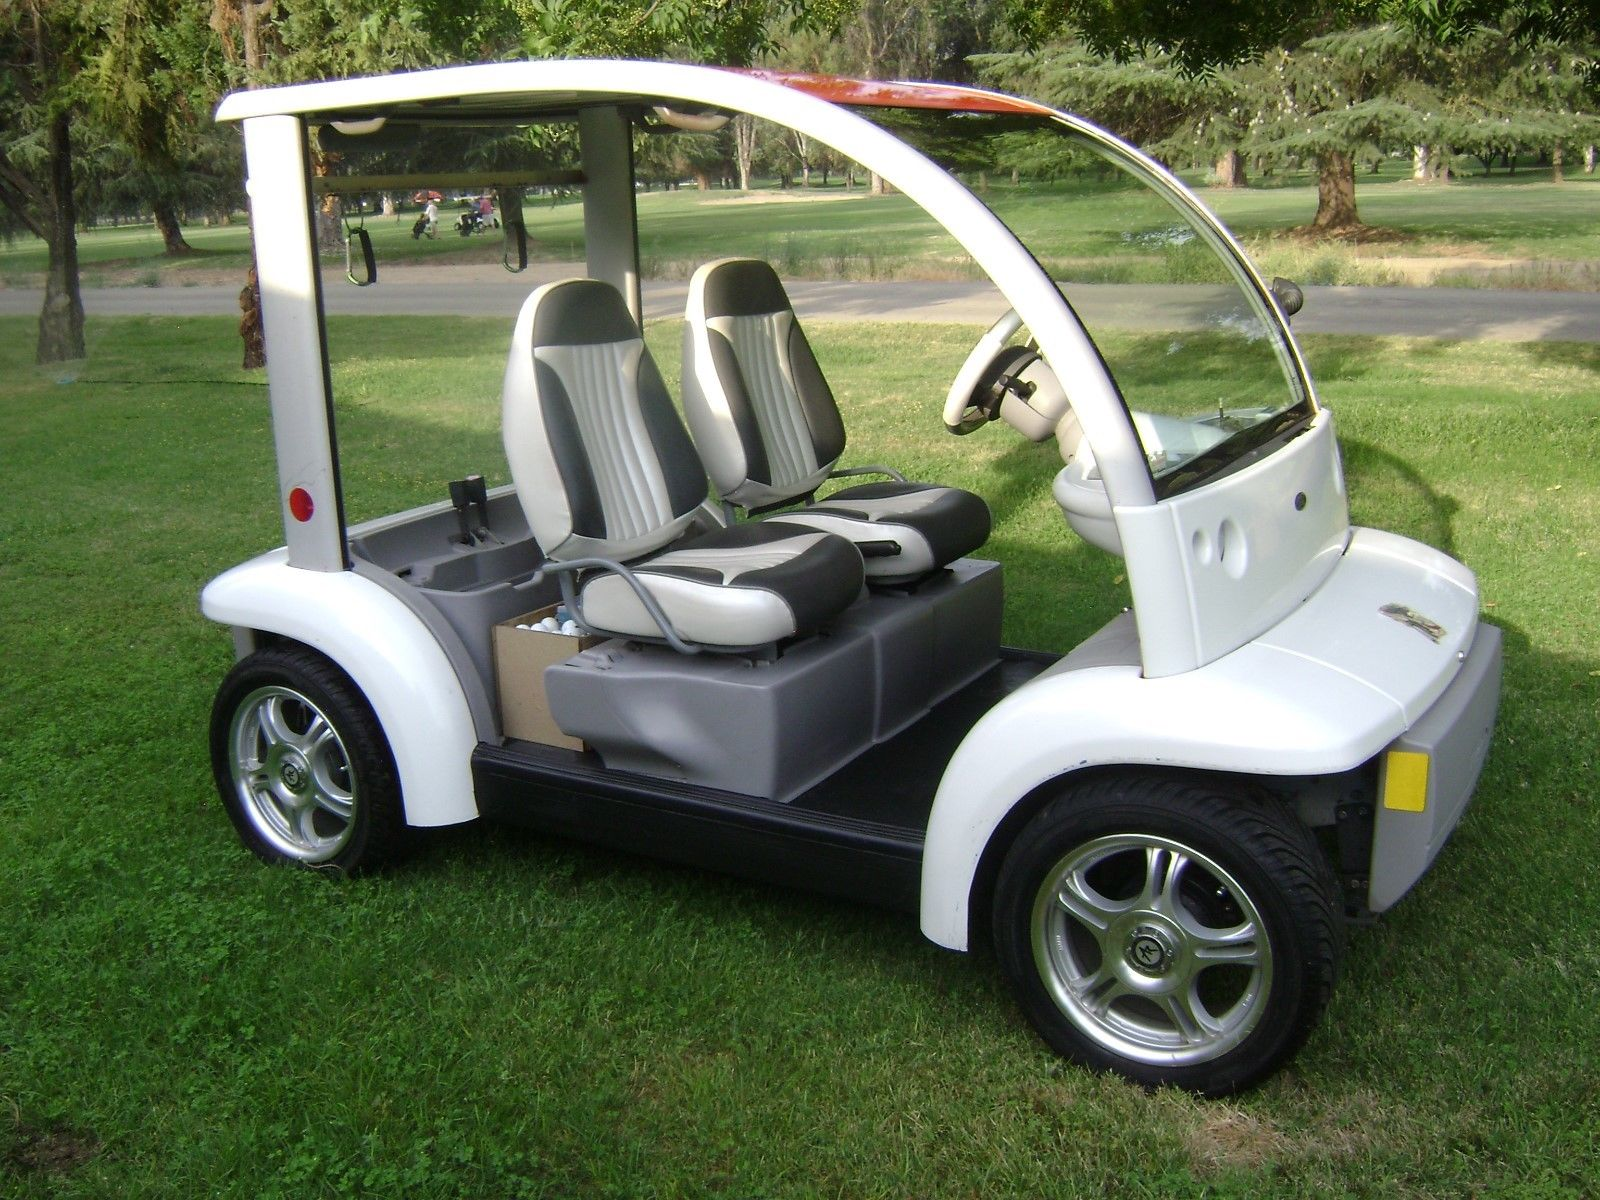 Maxresdefault moreover Ju X moreover  further Golf Cart Wheels And Tires Package E B Aluminum Wheel And Street Tires E together with Margarita Theme Custom Golf Car. on lifted golf carts